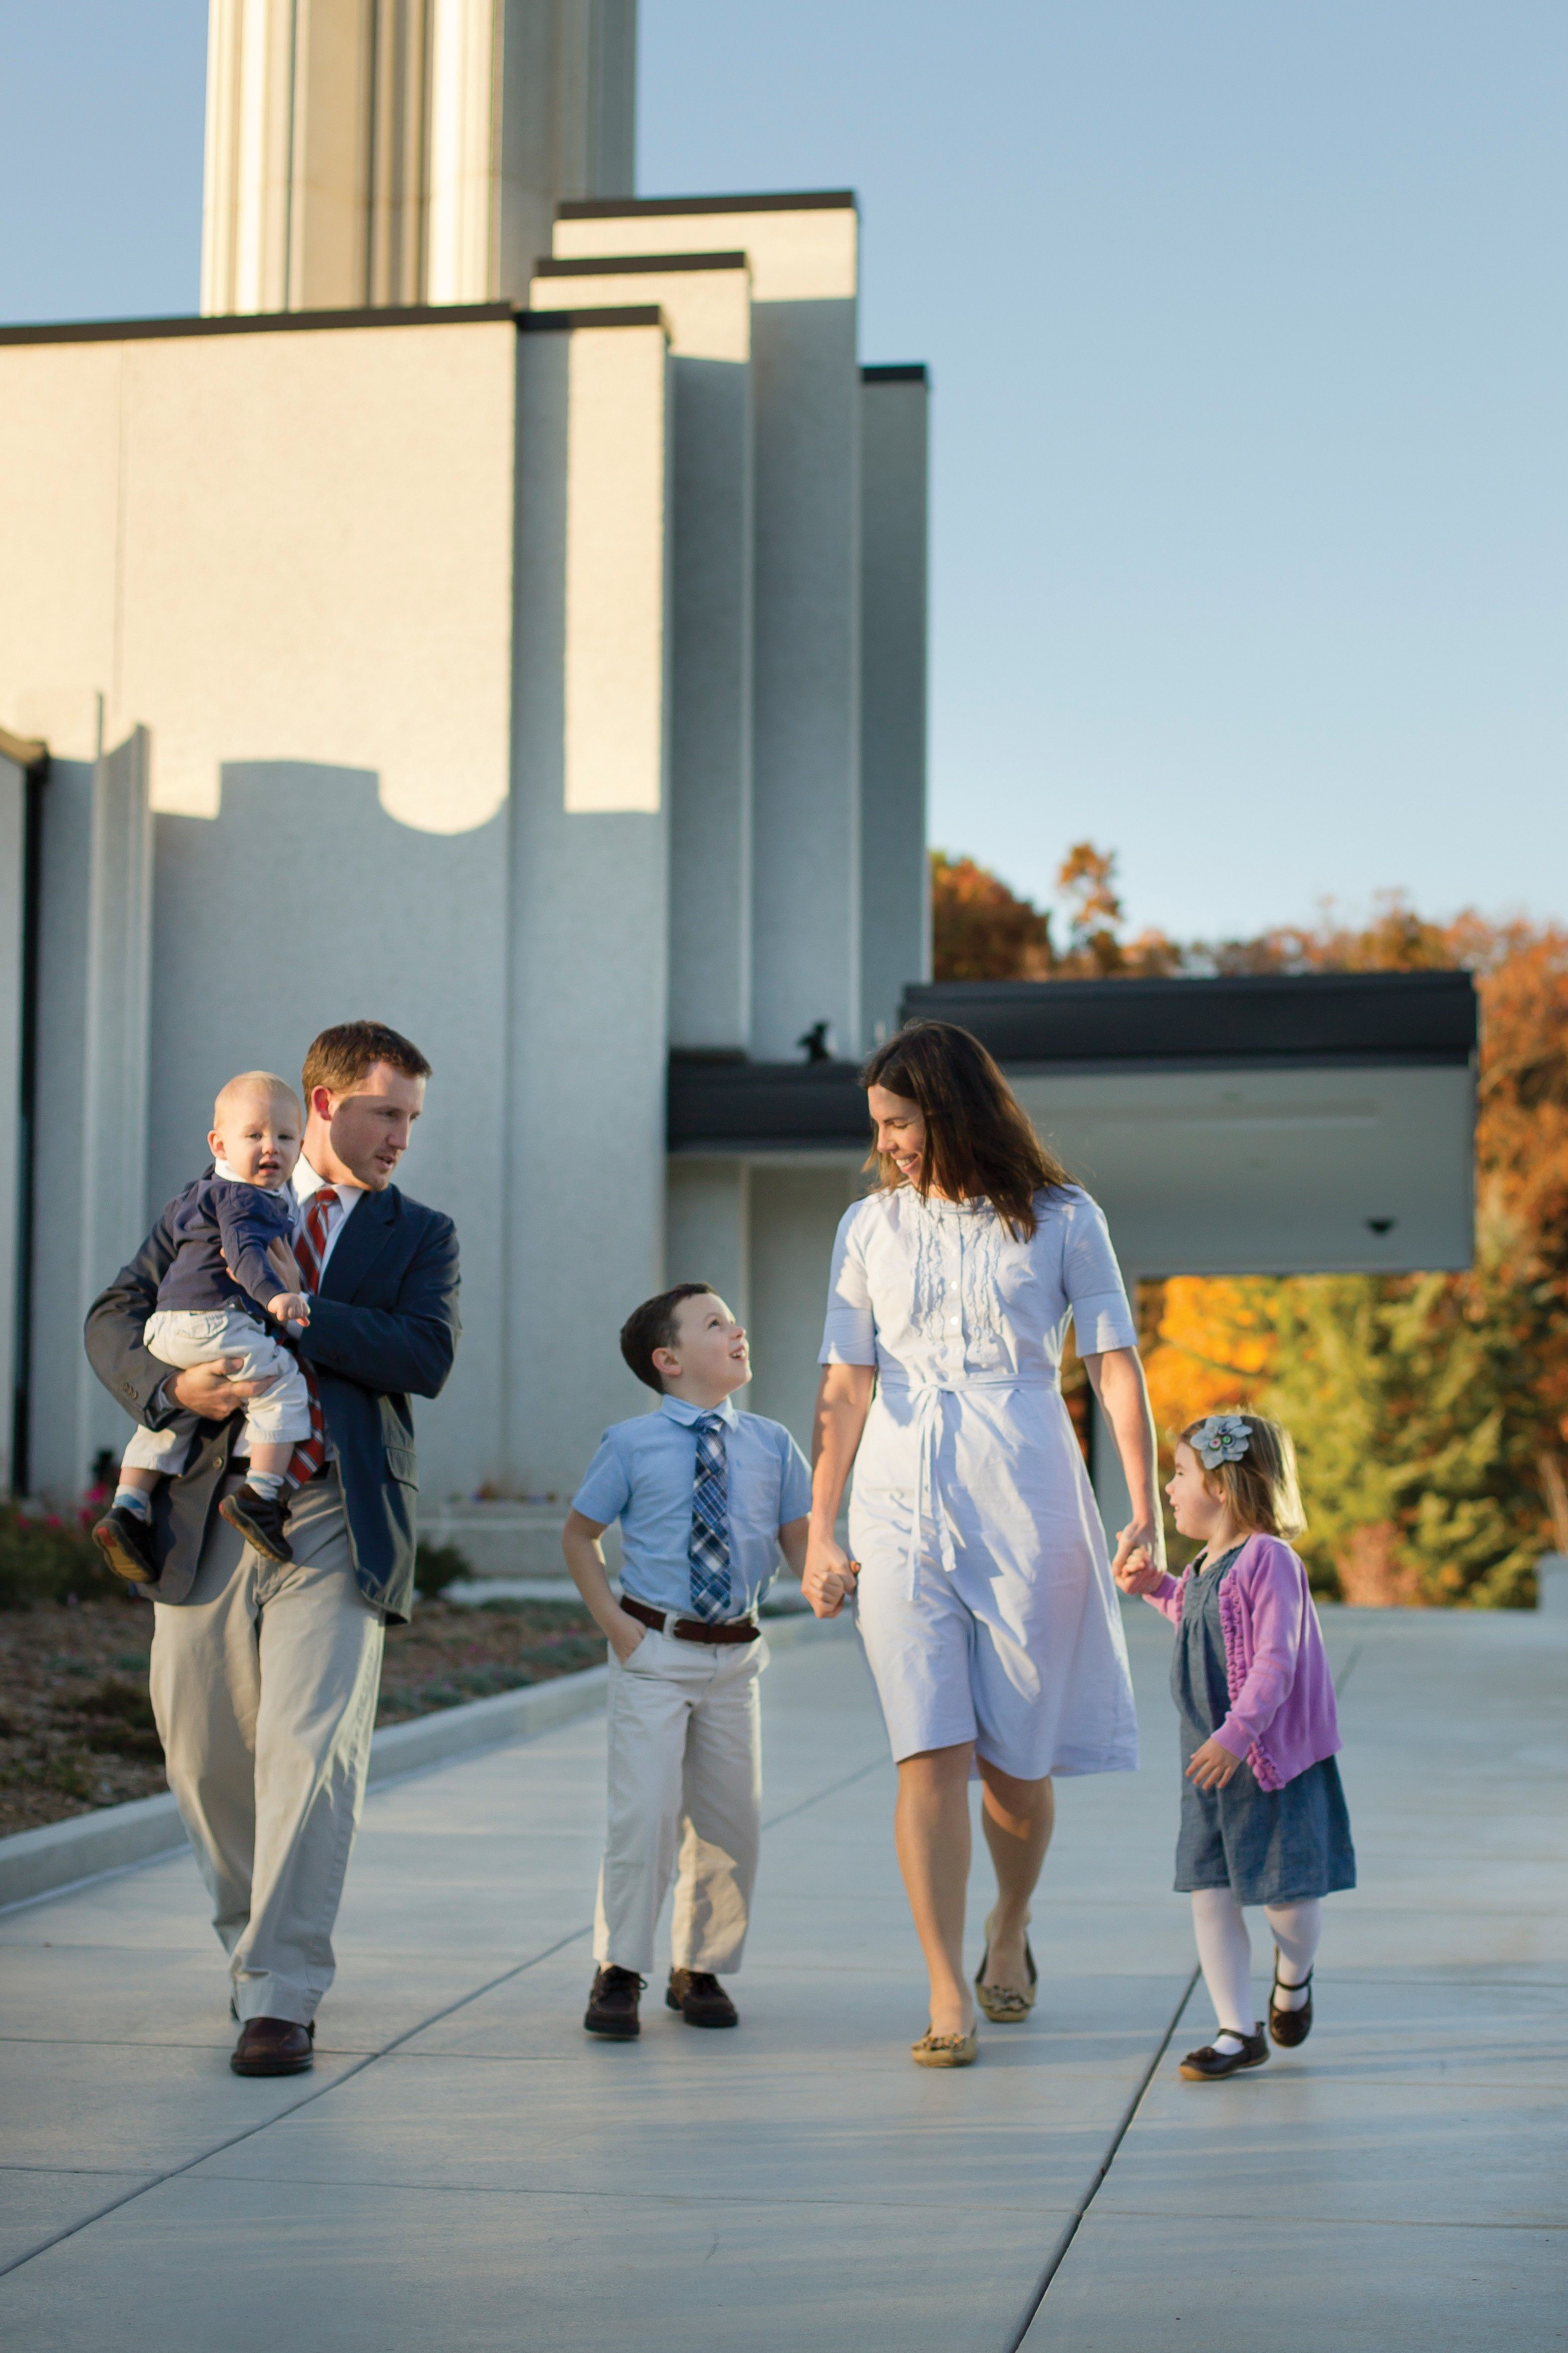 A family walks on the temple grounds together.